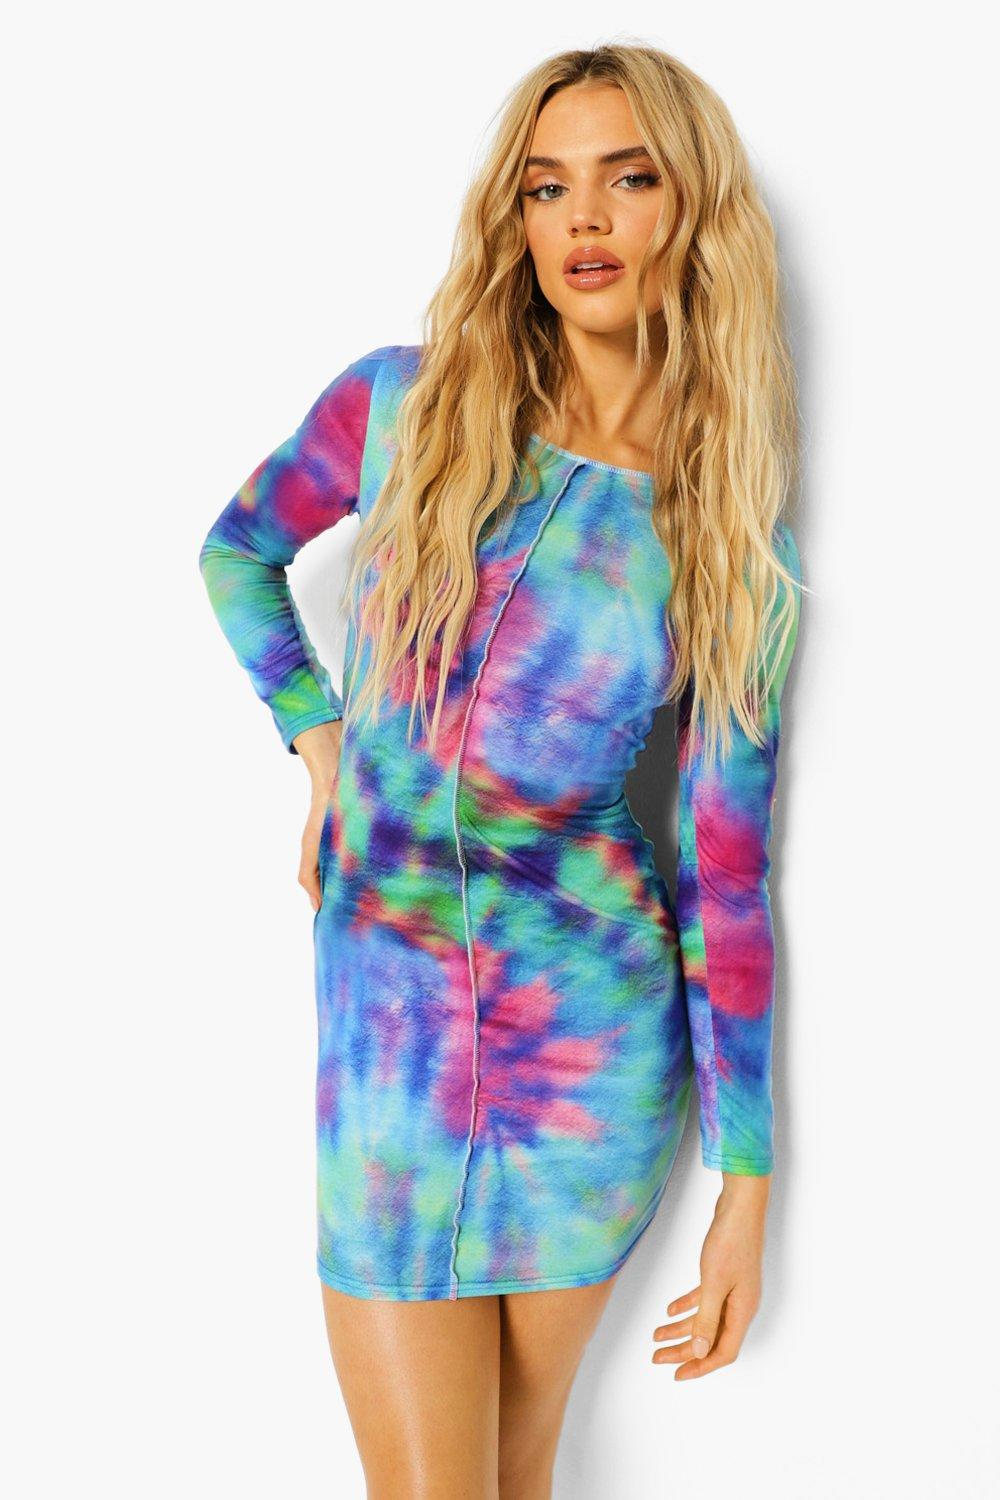 80s Dresses   Casual to Party Dresses Womens Tie Dye Long Sleeve Mini Dress - Blue - 6 $12.00 AT vintagedancer.com